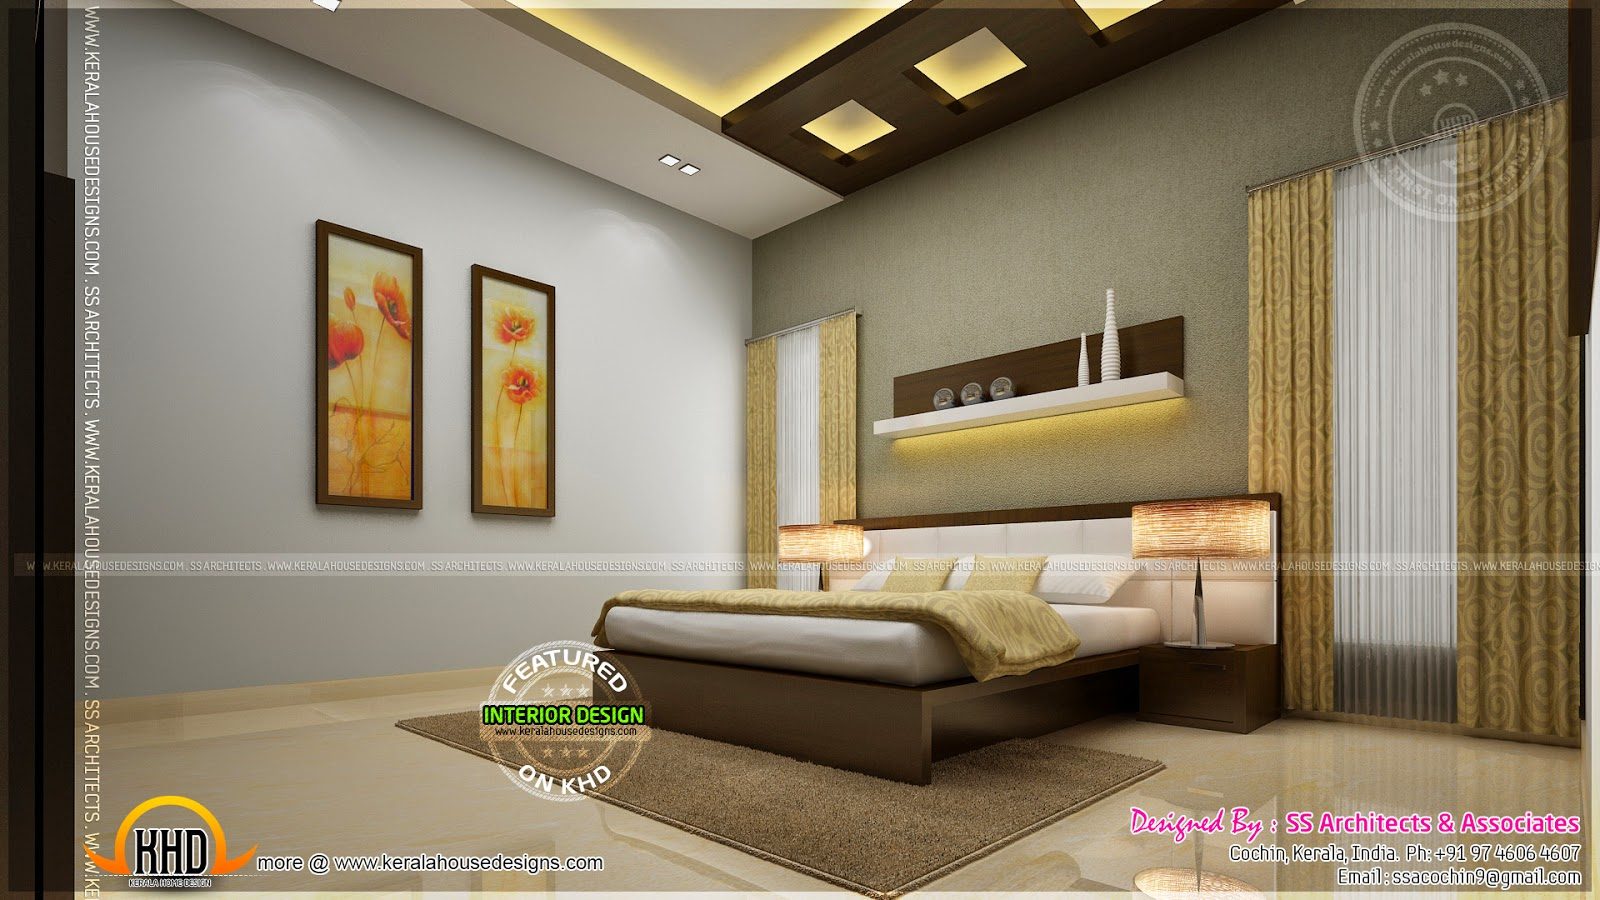 Awesome master bedroom interior kerala home design and floor plans - Design of bedroom ...